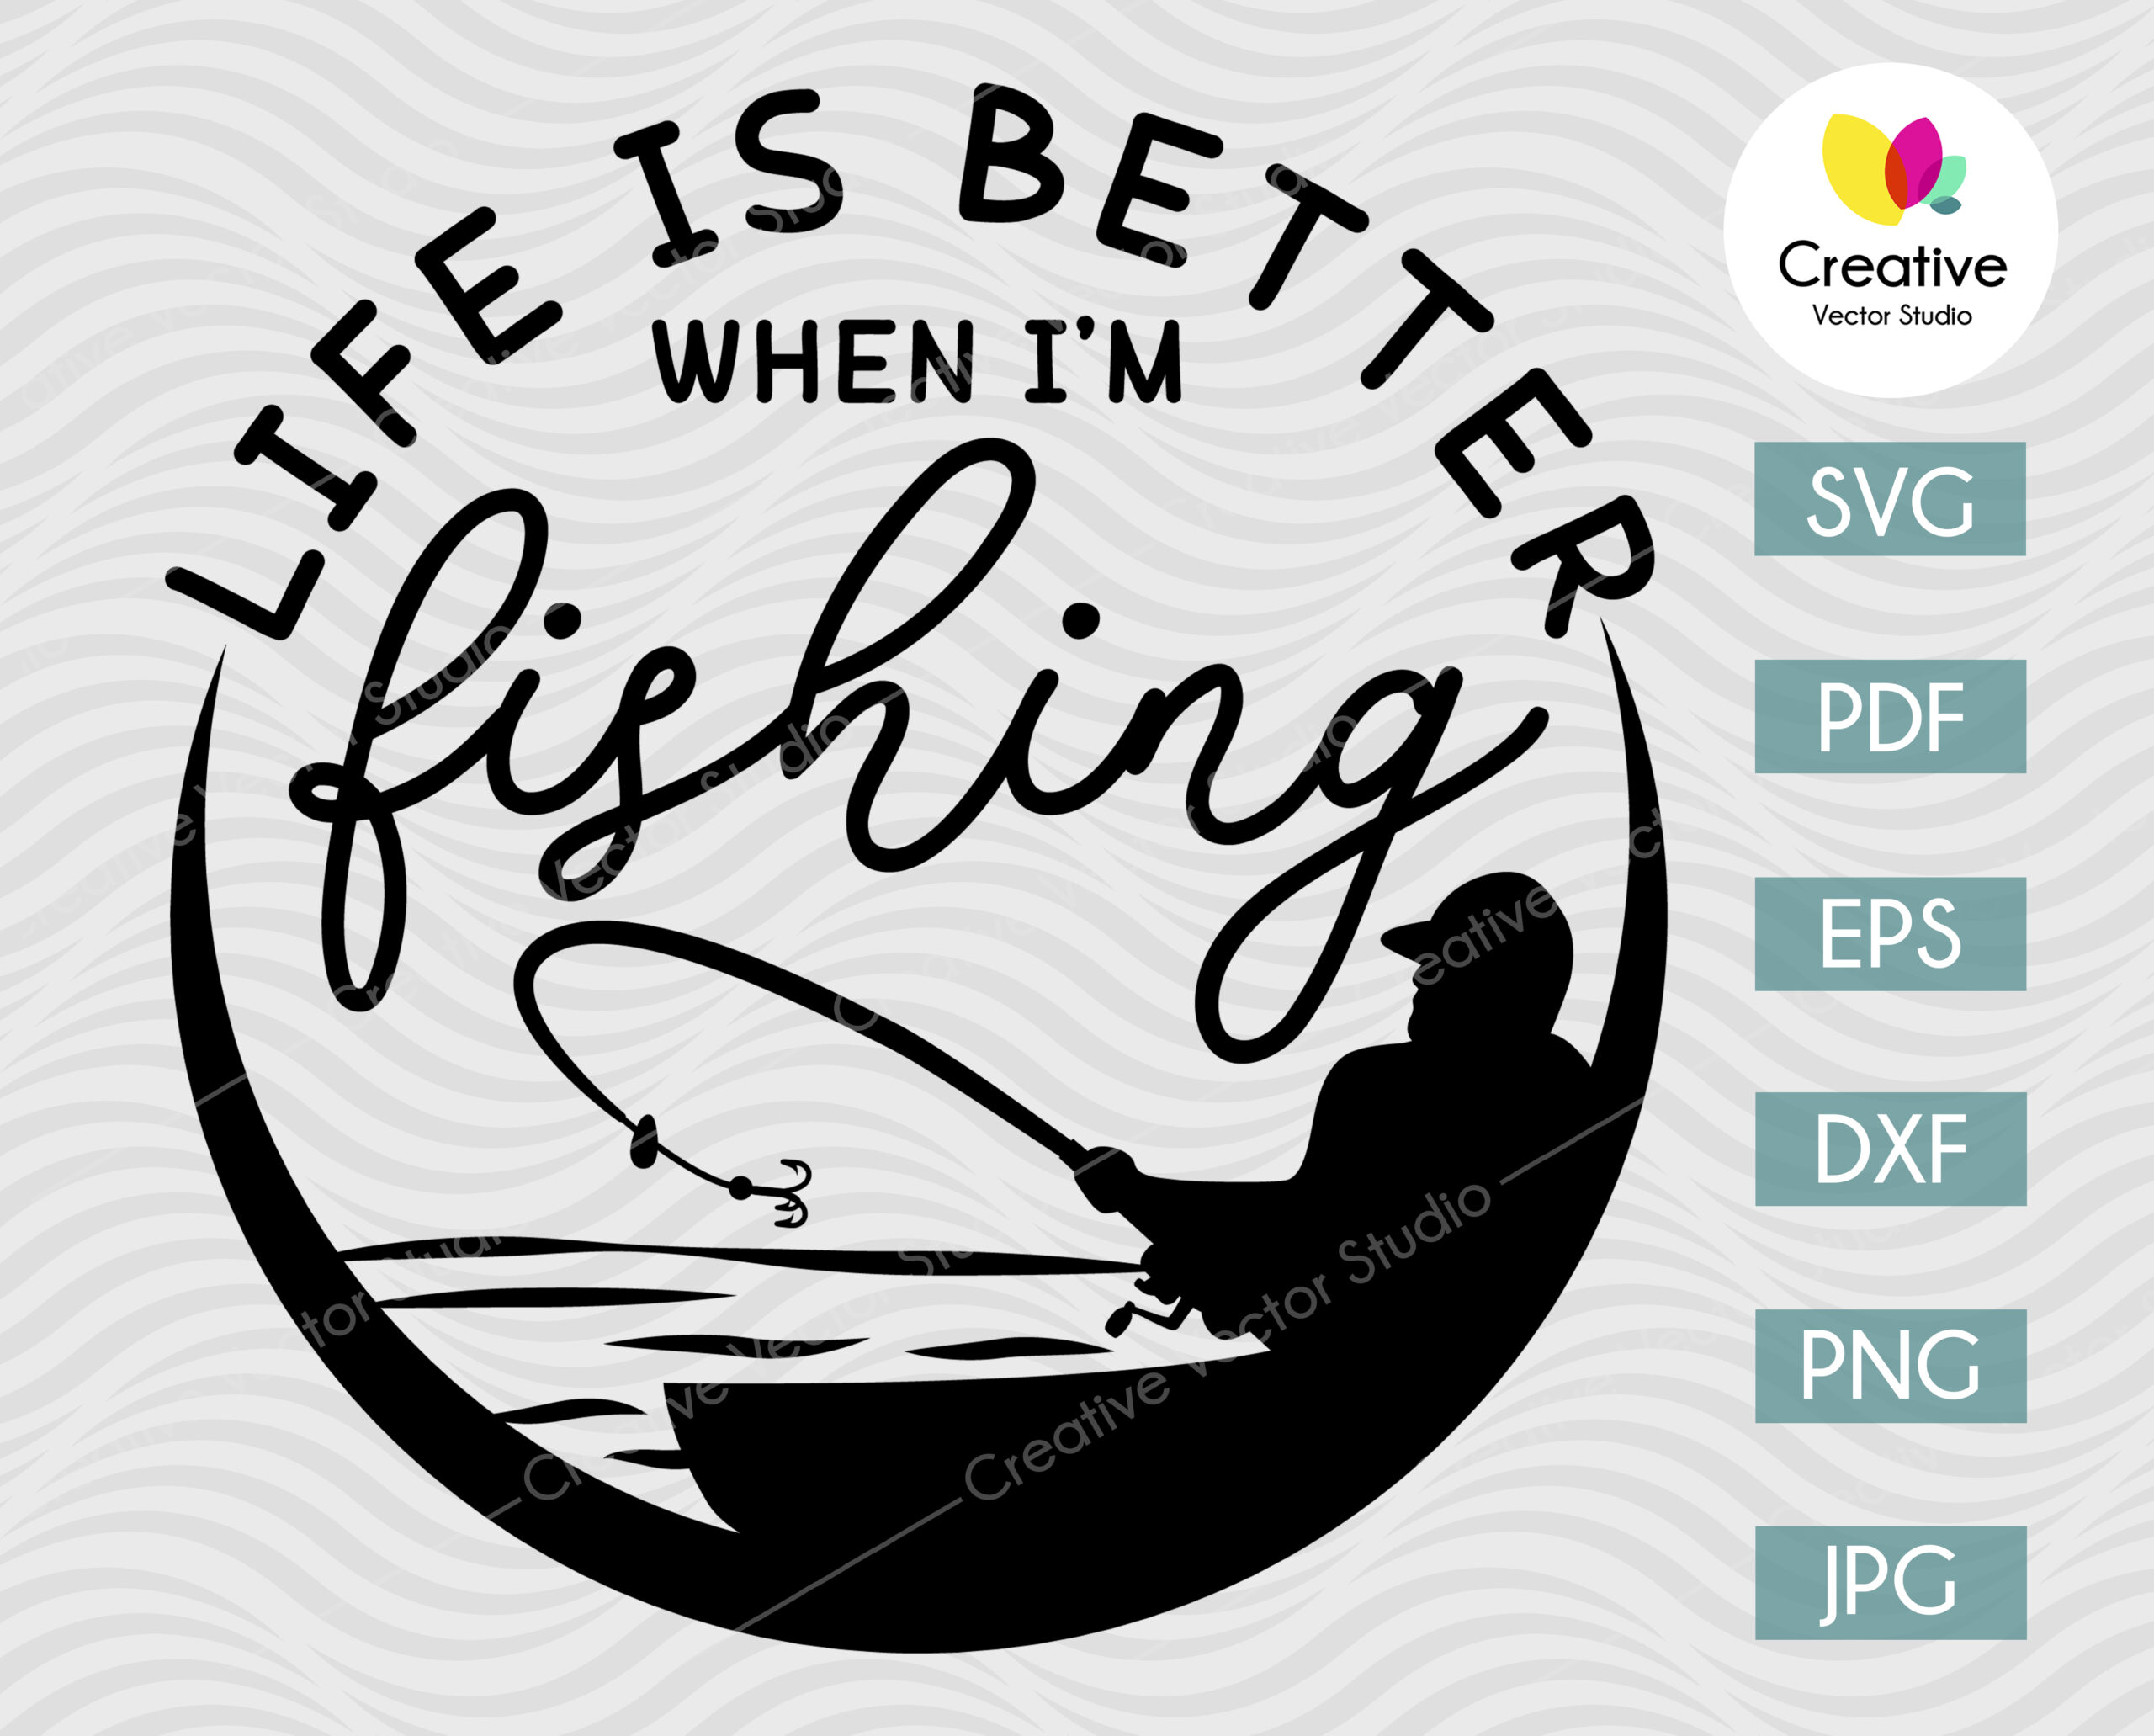 Download Life Is Better When I M Fishing Svg Creative Vector Studio